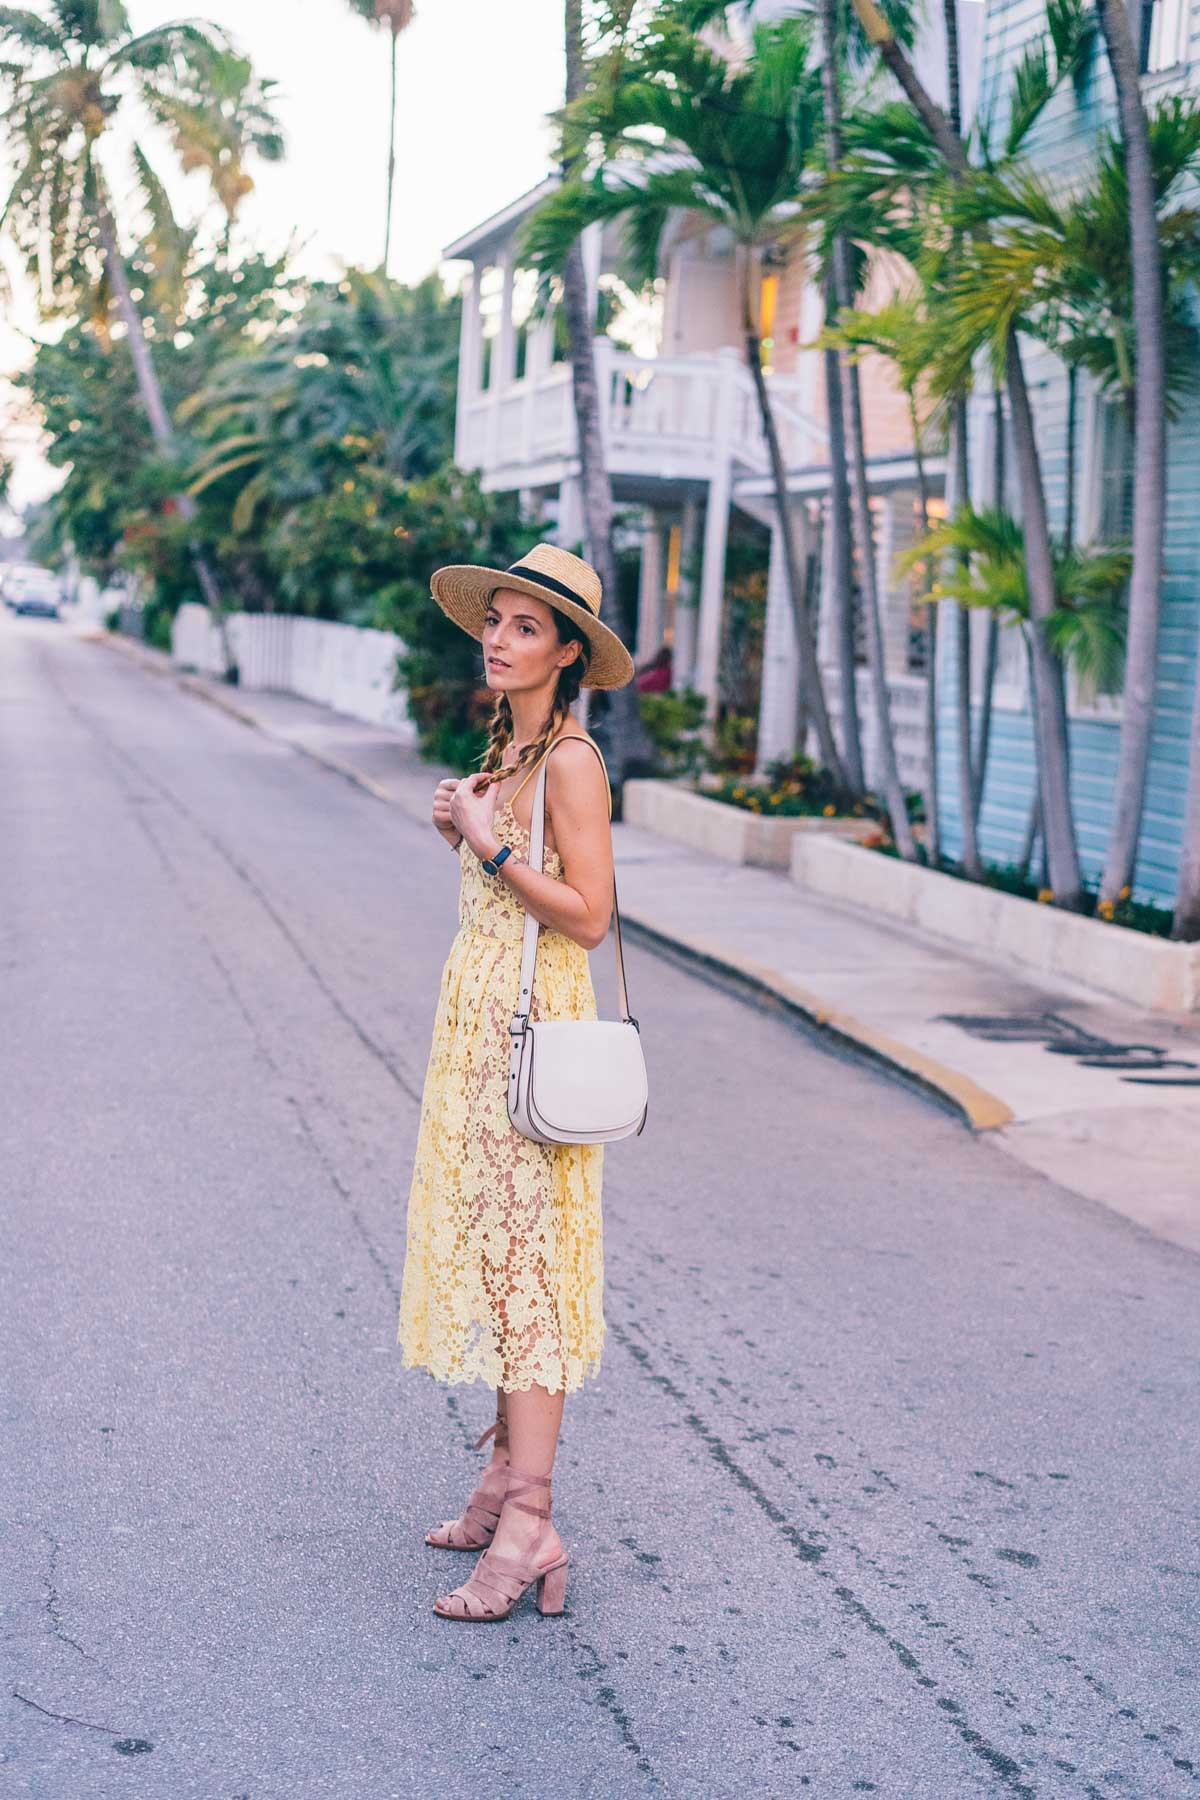 Jess Kirby in Key West wearing a yellow lace midi dress from Anthropologie and blush suede heels